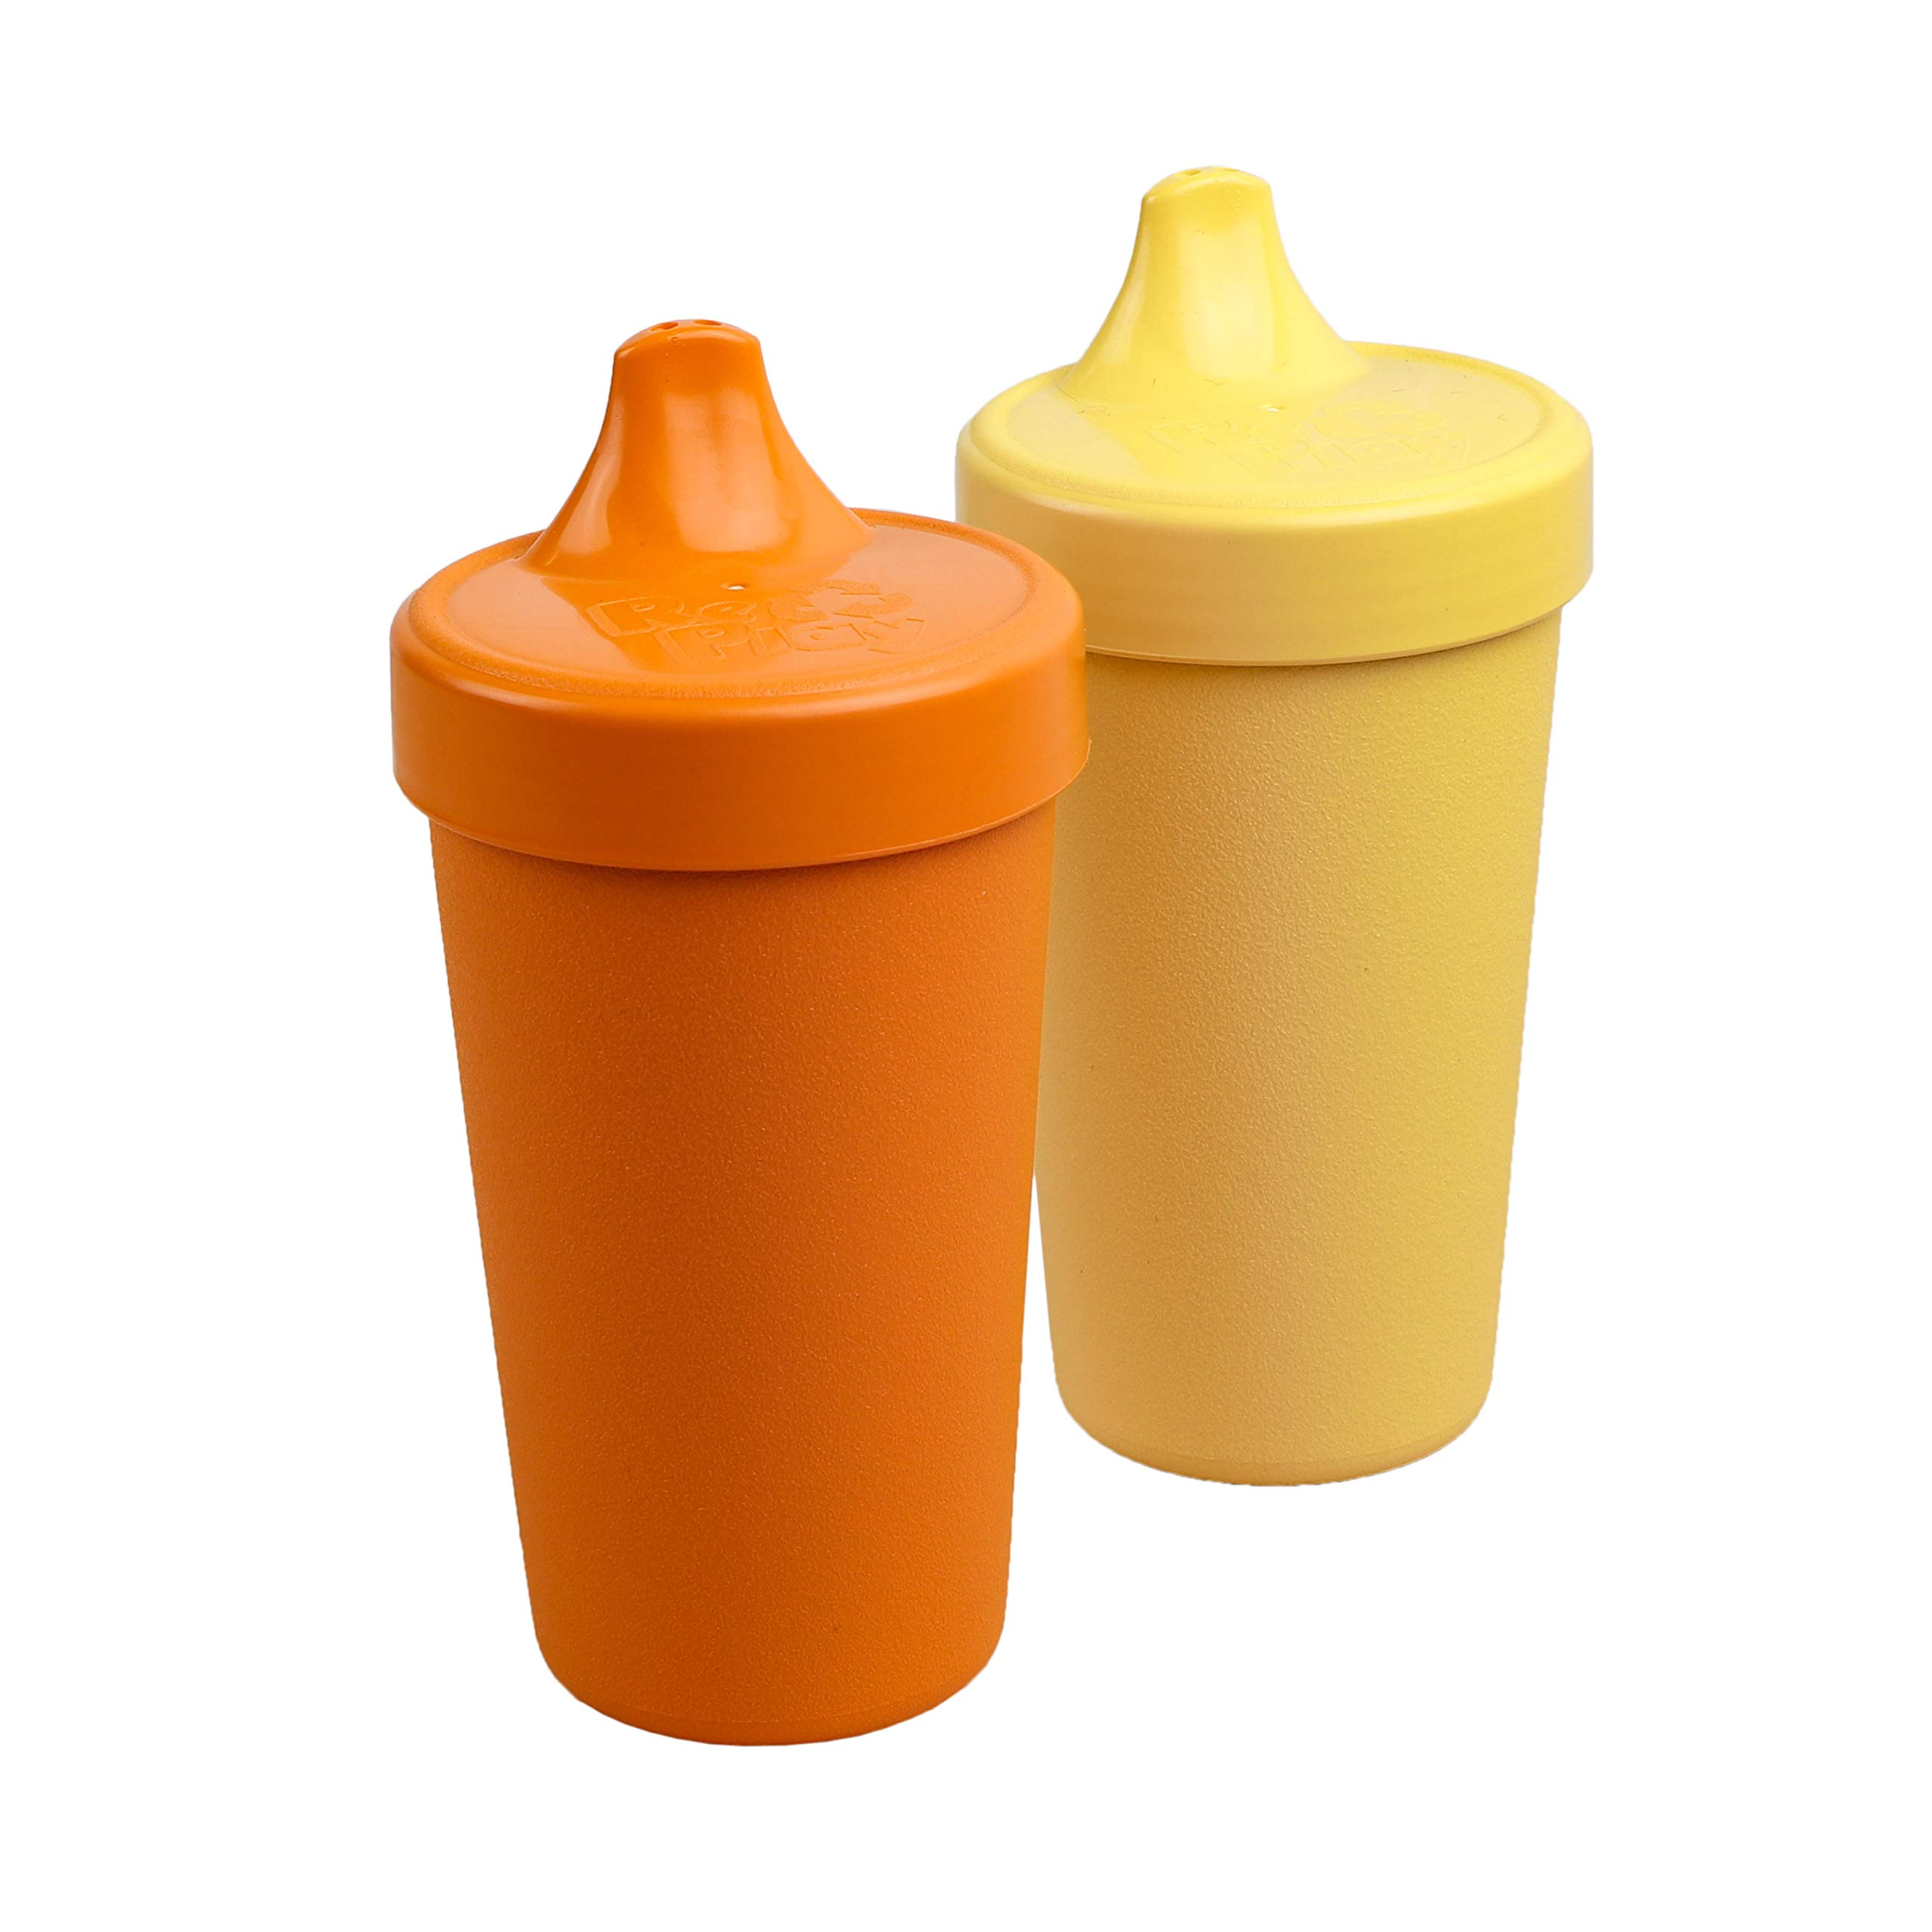 Re-Play Made in USA 2pk Toddler Feeding No Spill Sippy Cups | 1 Piece Silicone Easy Clean Valve | Eco Friendly Heavyweight Recycled Milk Jugs are Virtually Indestructible | Orange, Yellow